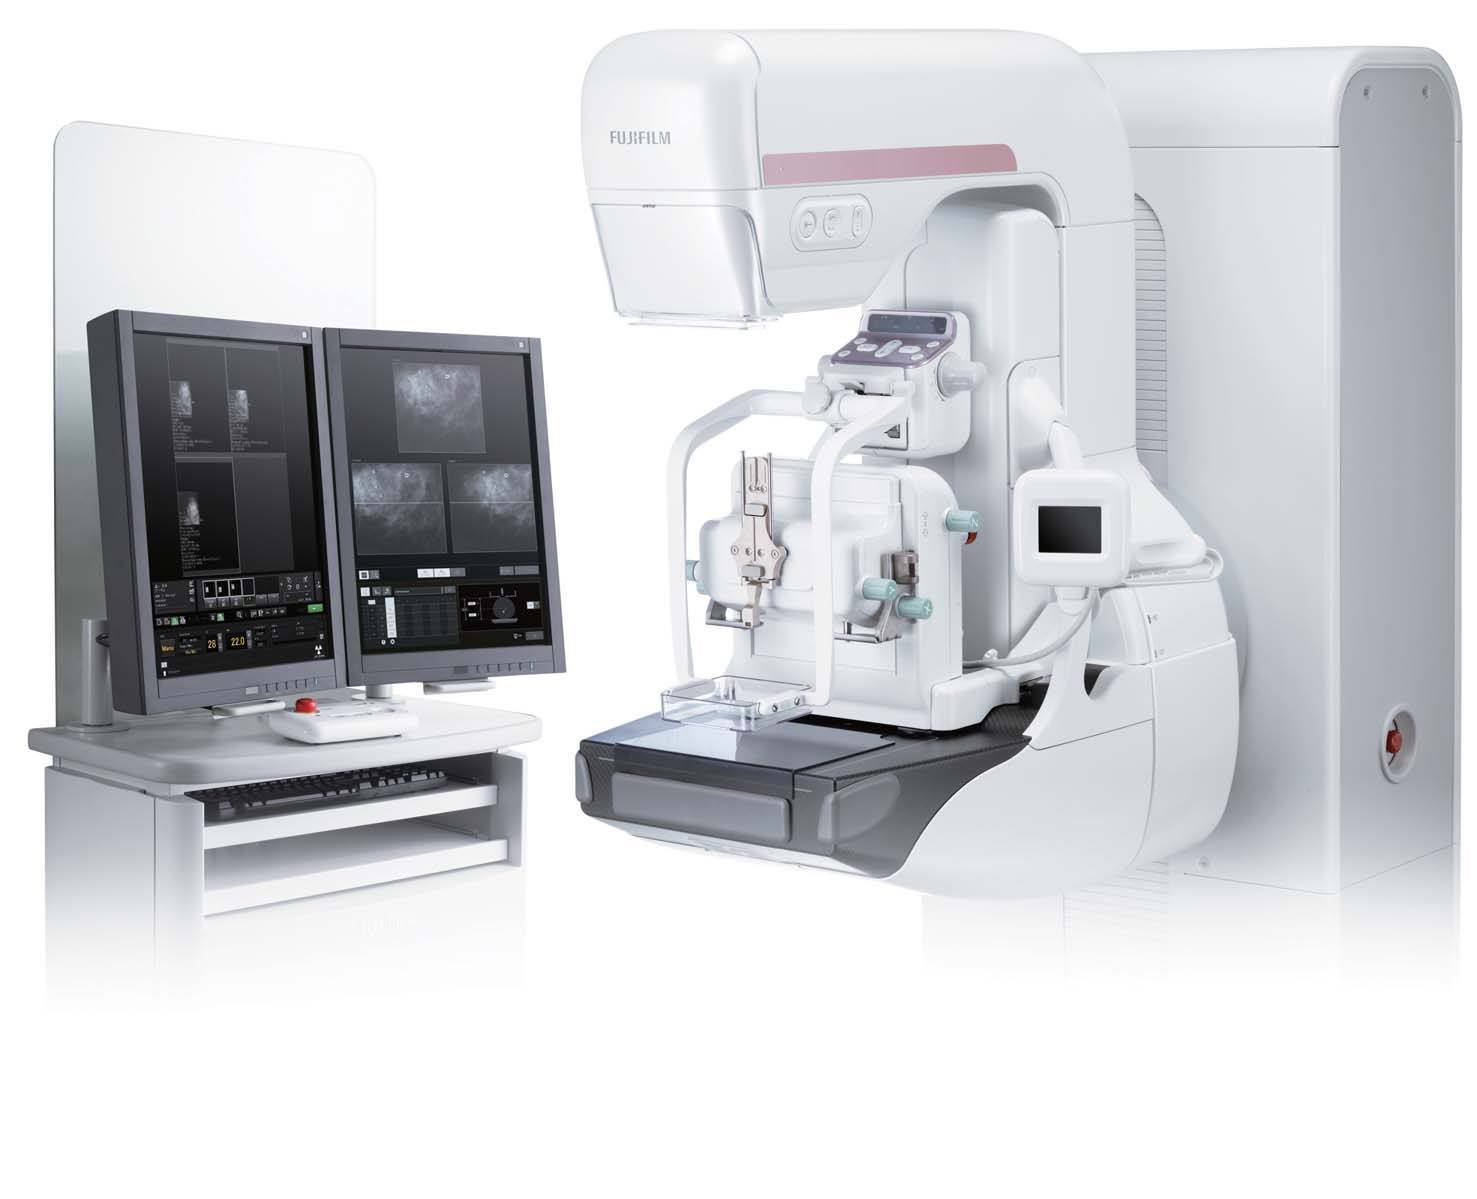 3D Mammography system